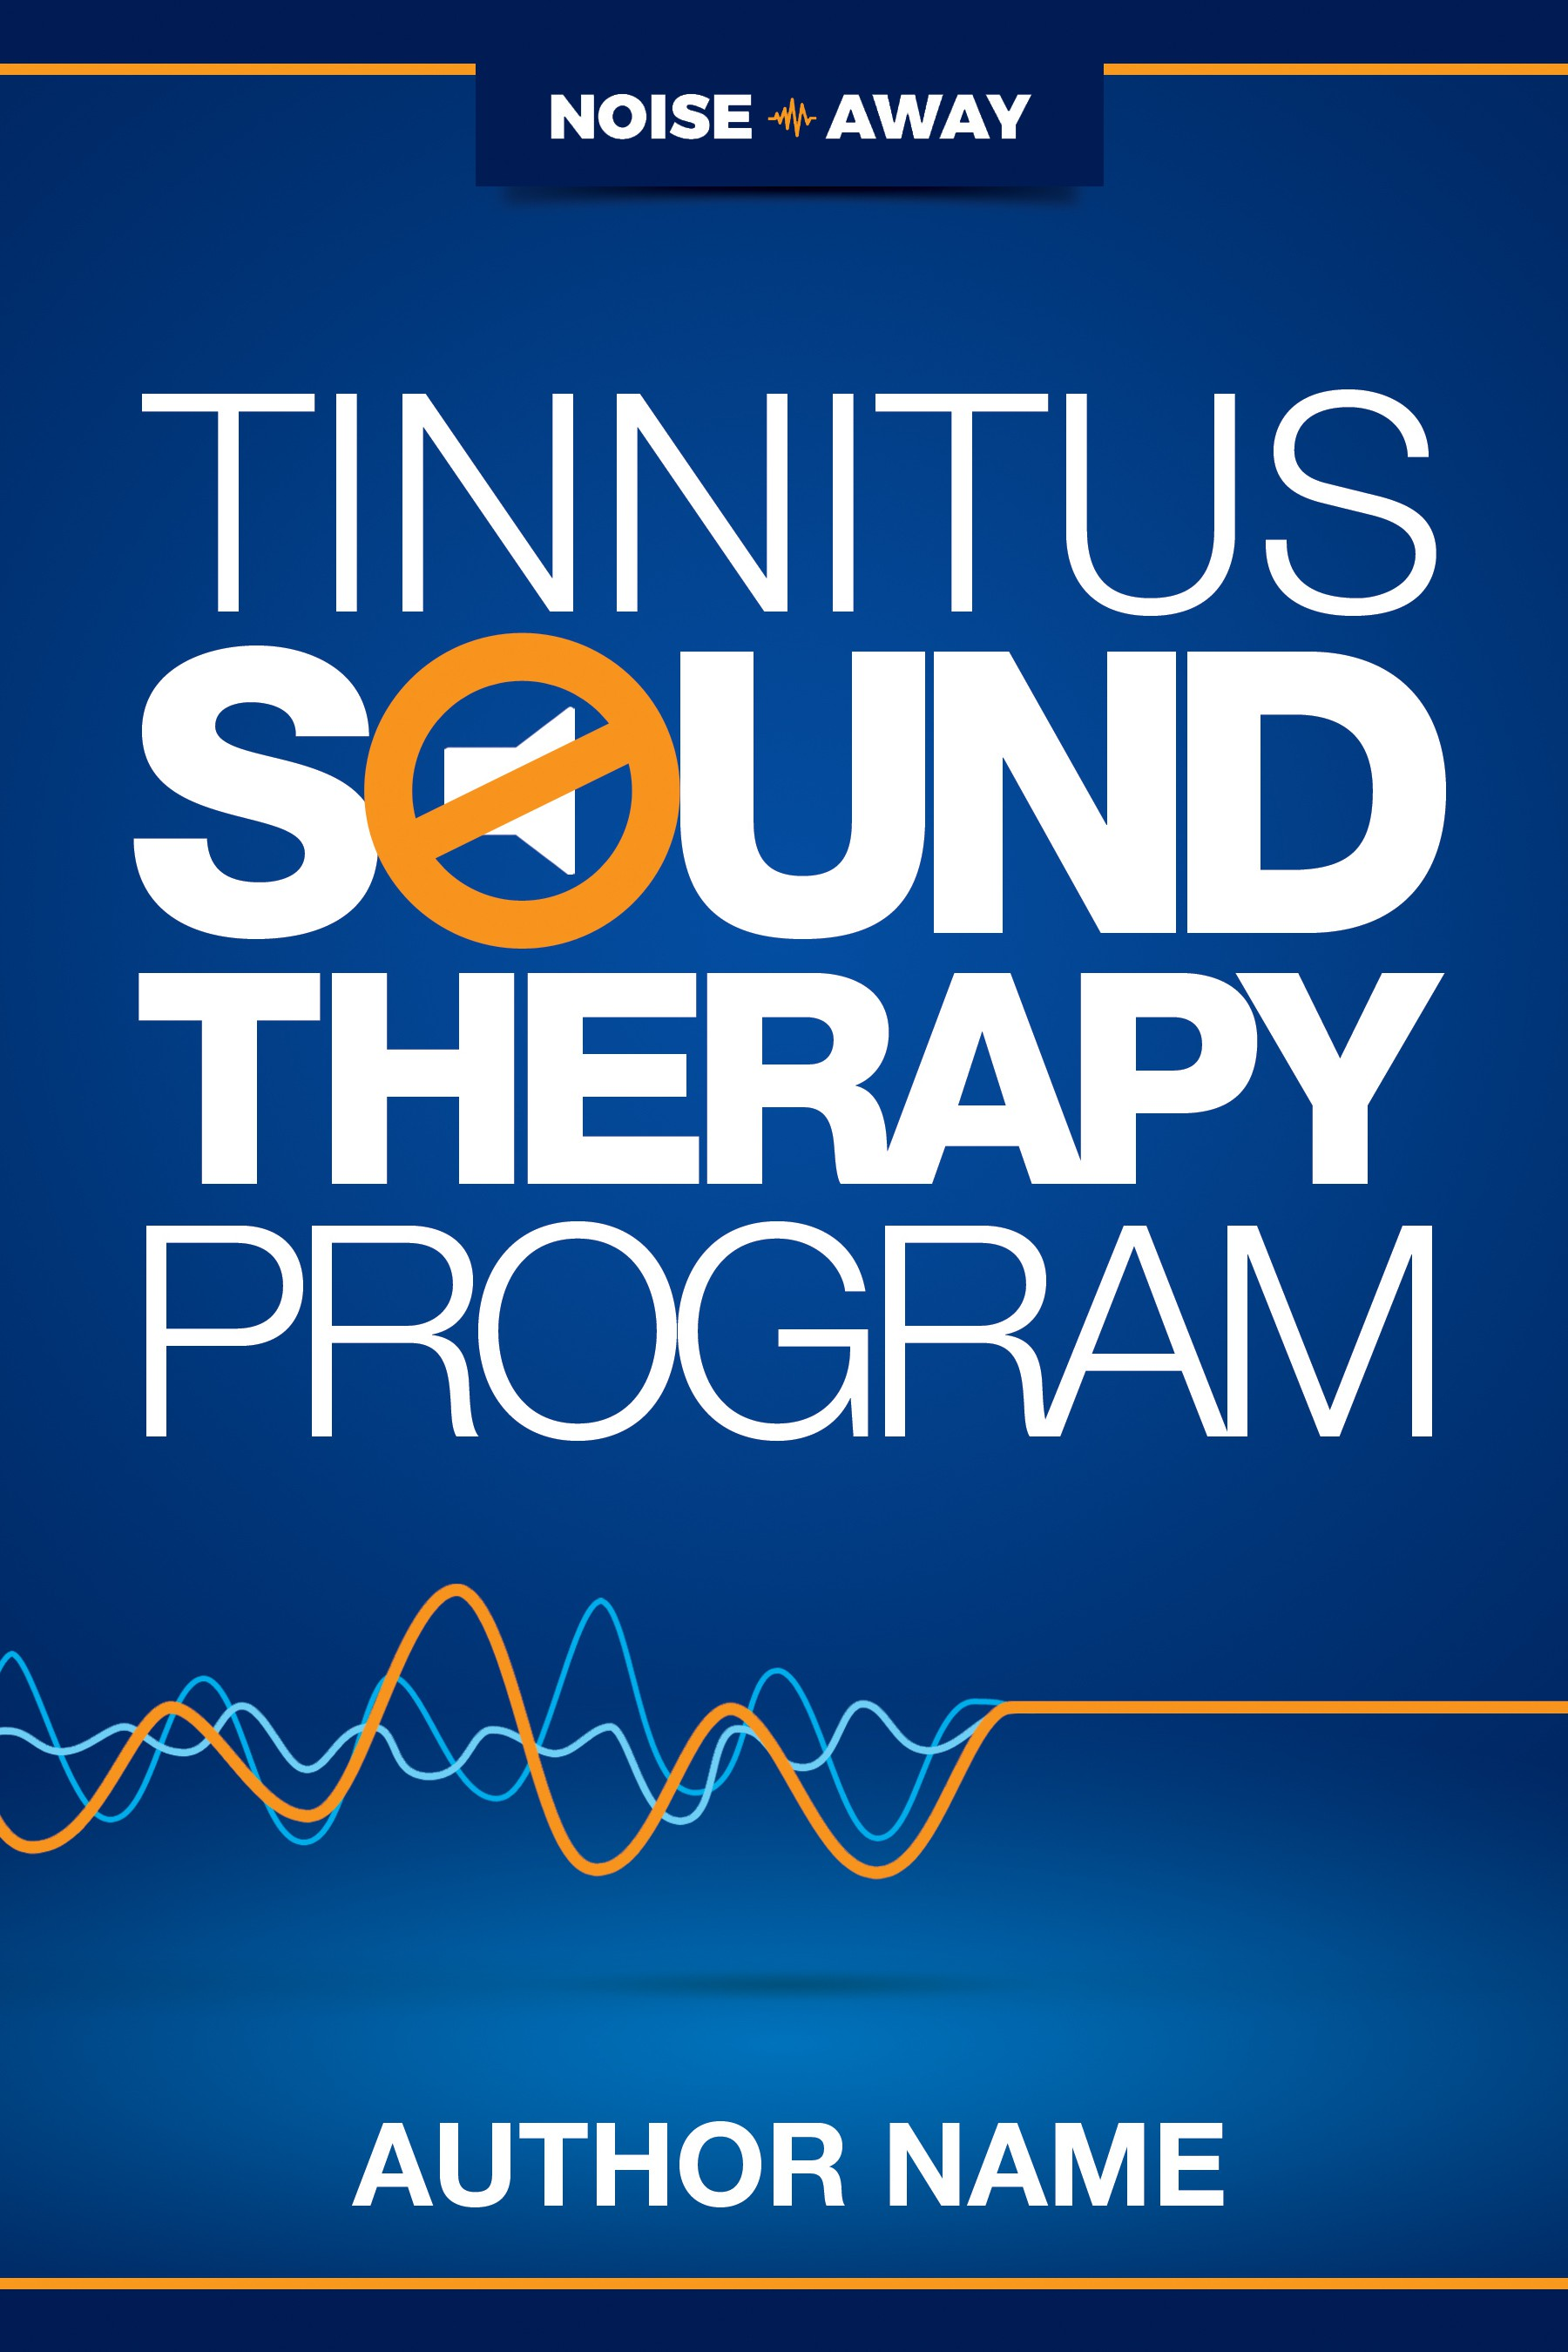 Create a book cover for a 30-day health program about Tinnitus (hearing condition)